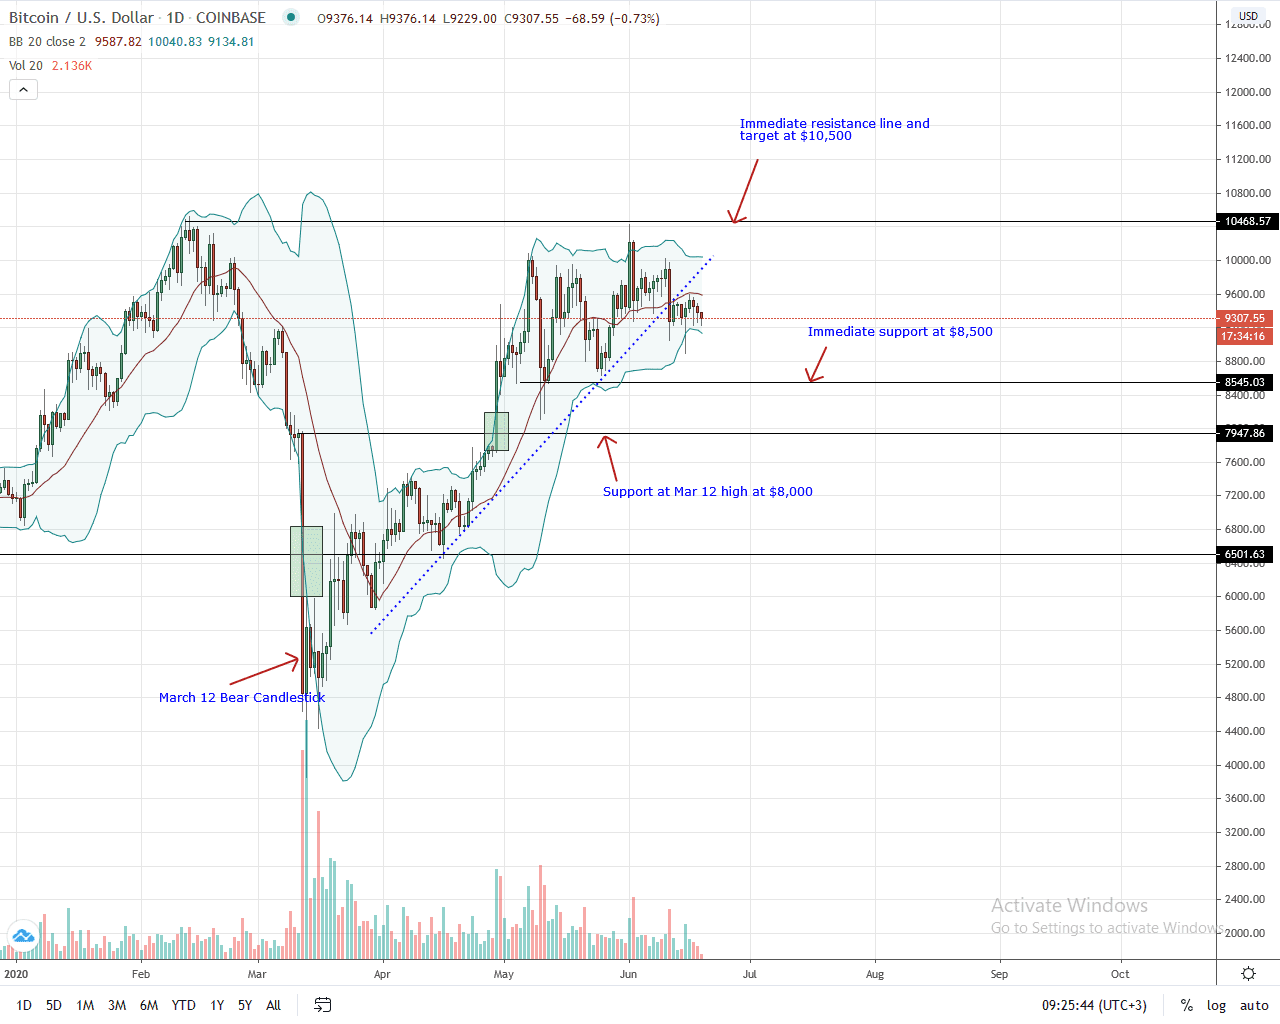 Bitcoin Daily Chart for June 19, 2020